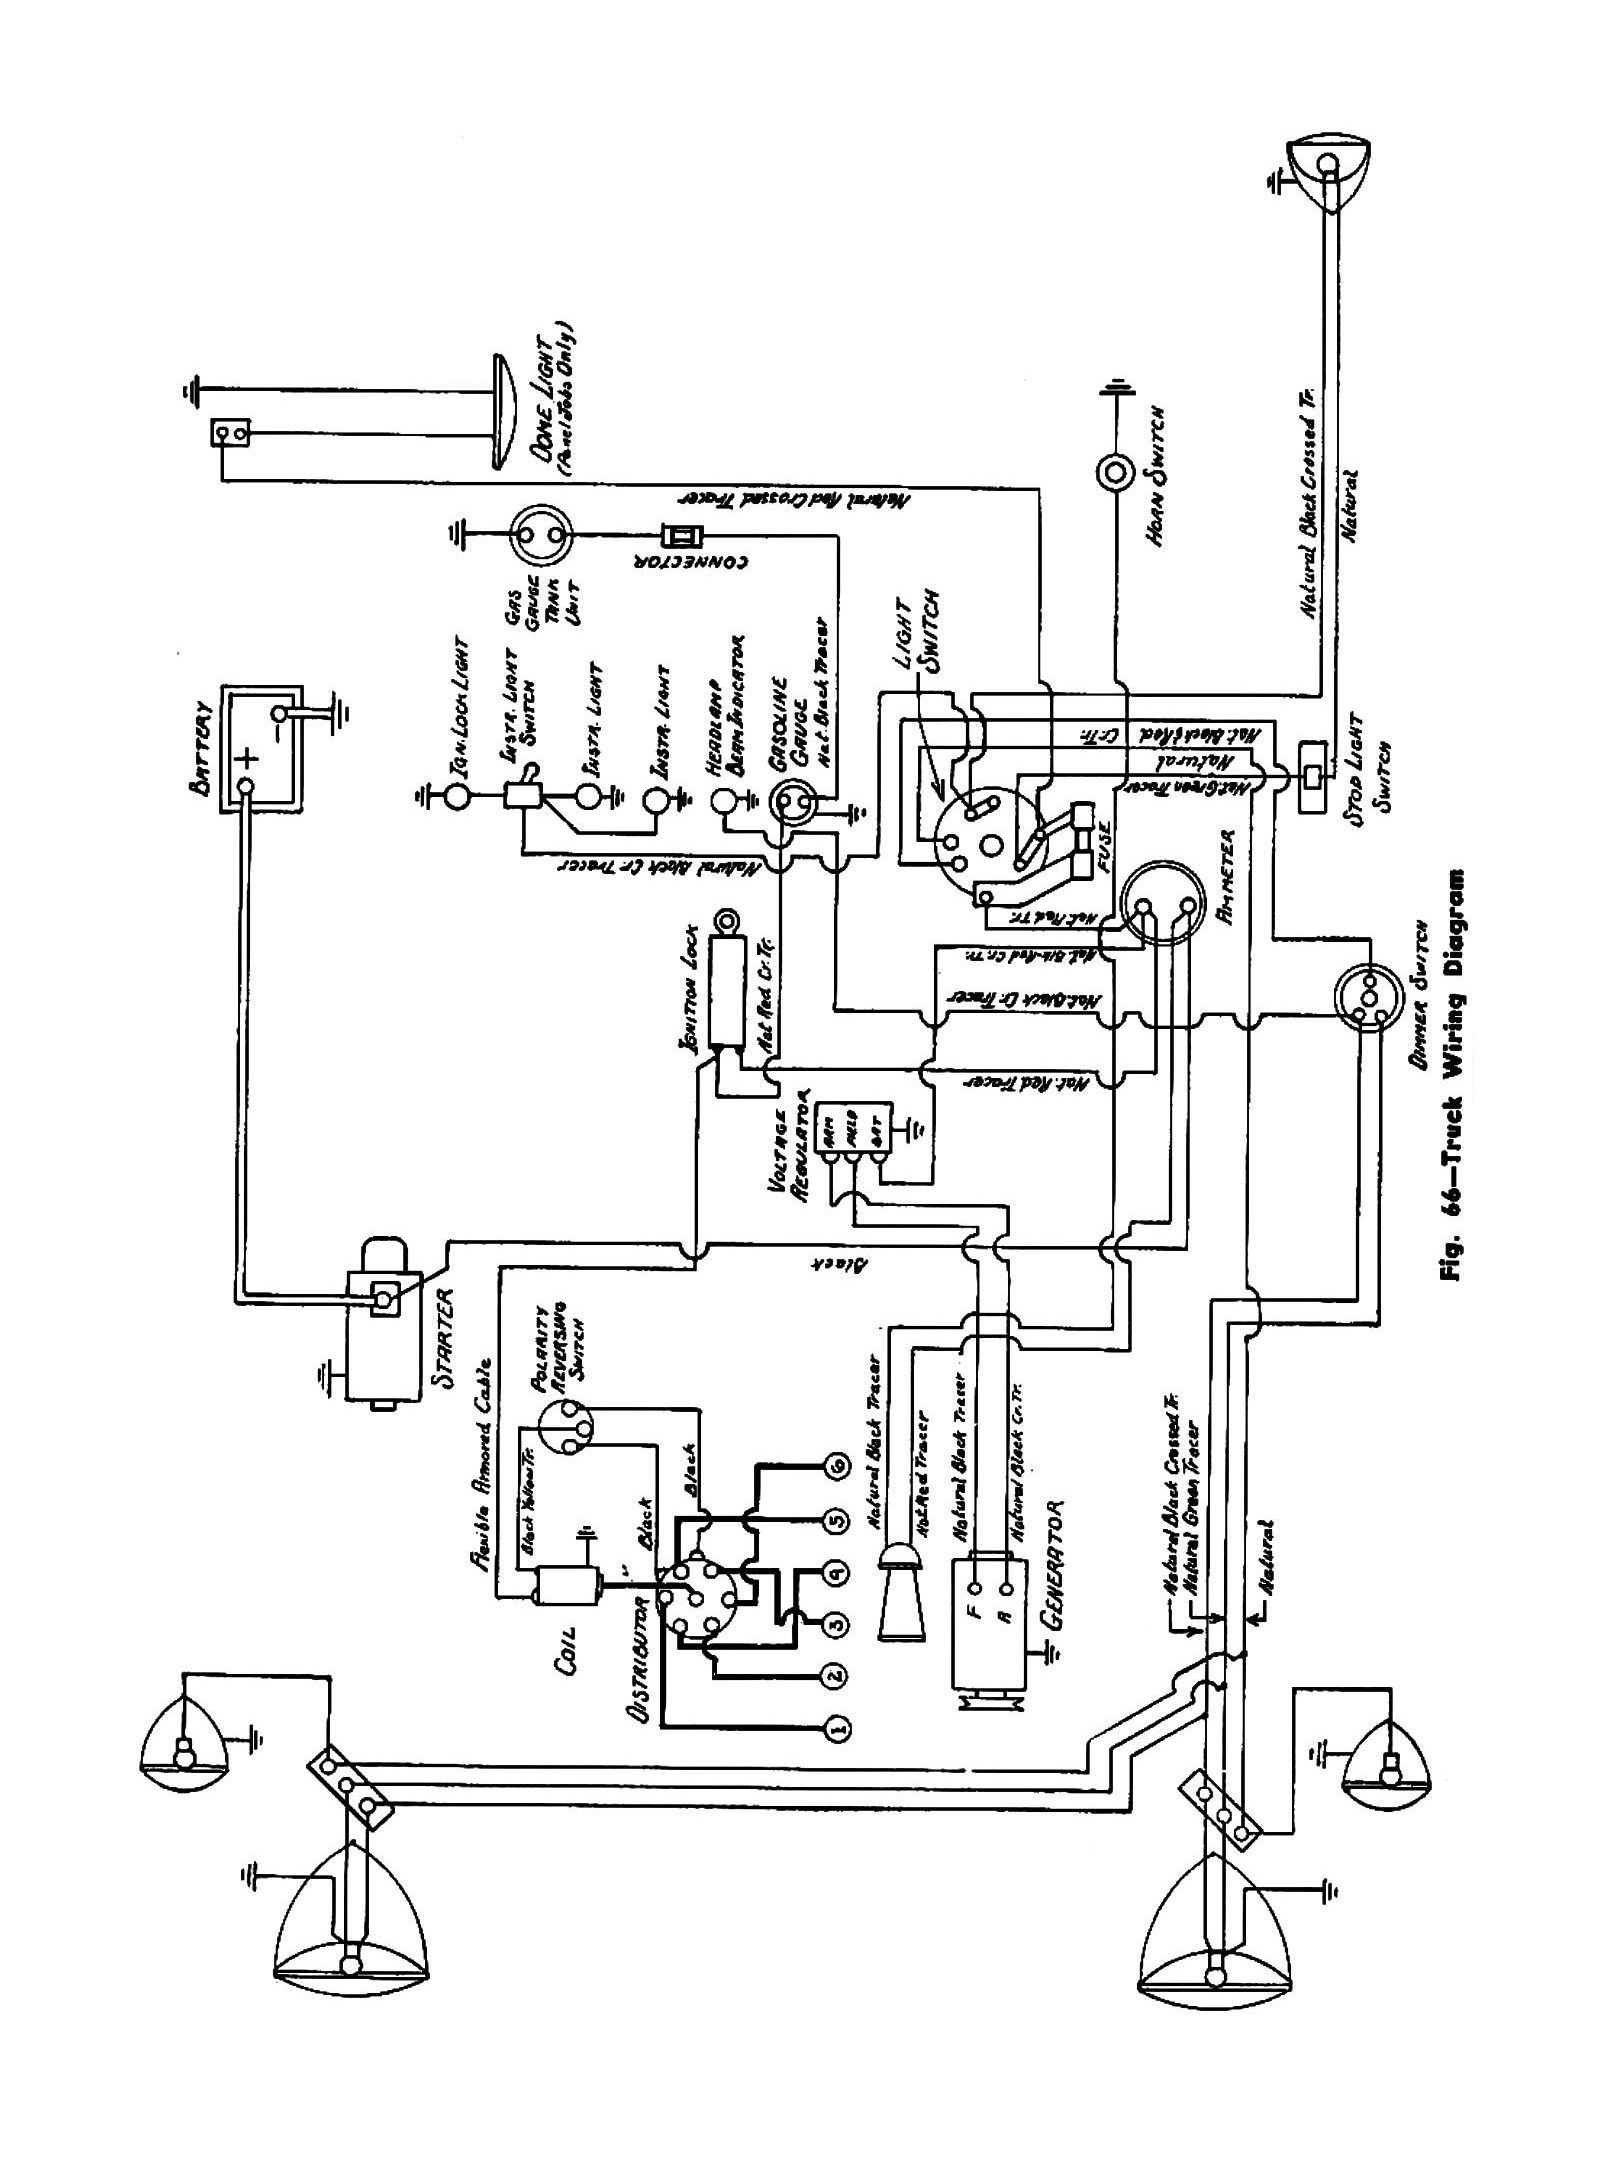 hight resolution of wrg 1835 wiring diagram for 1949 ford f100 1949 international truck wiring harness